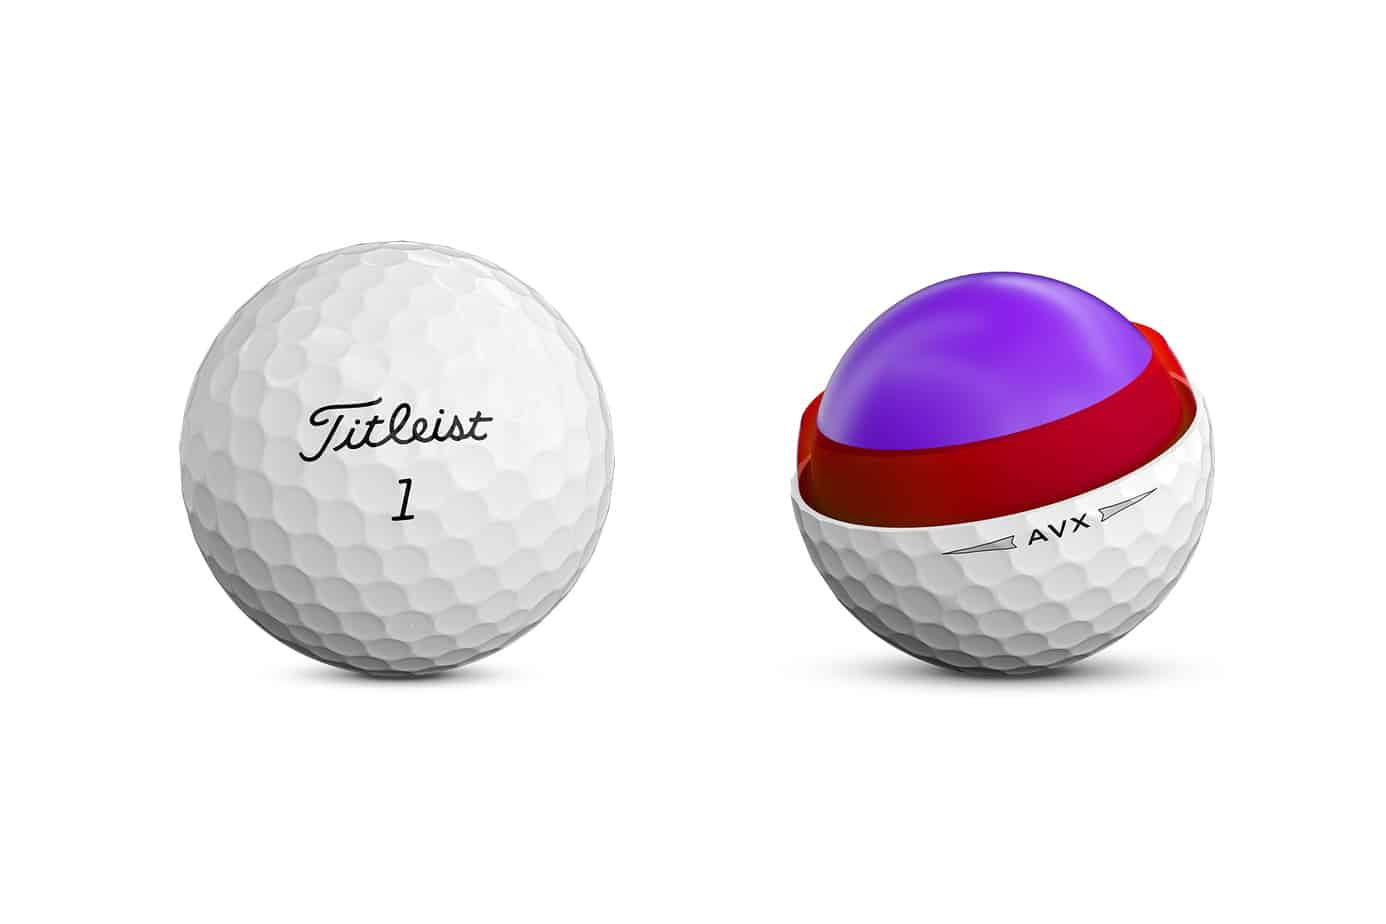 Image of Titleist AVX golf ball core and outer layer